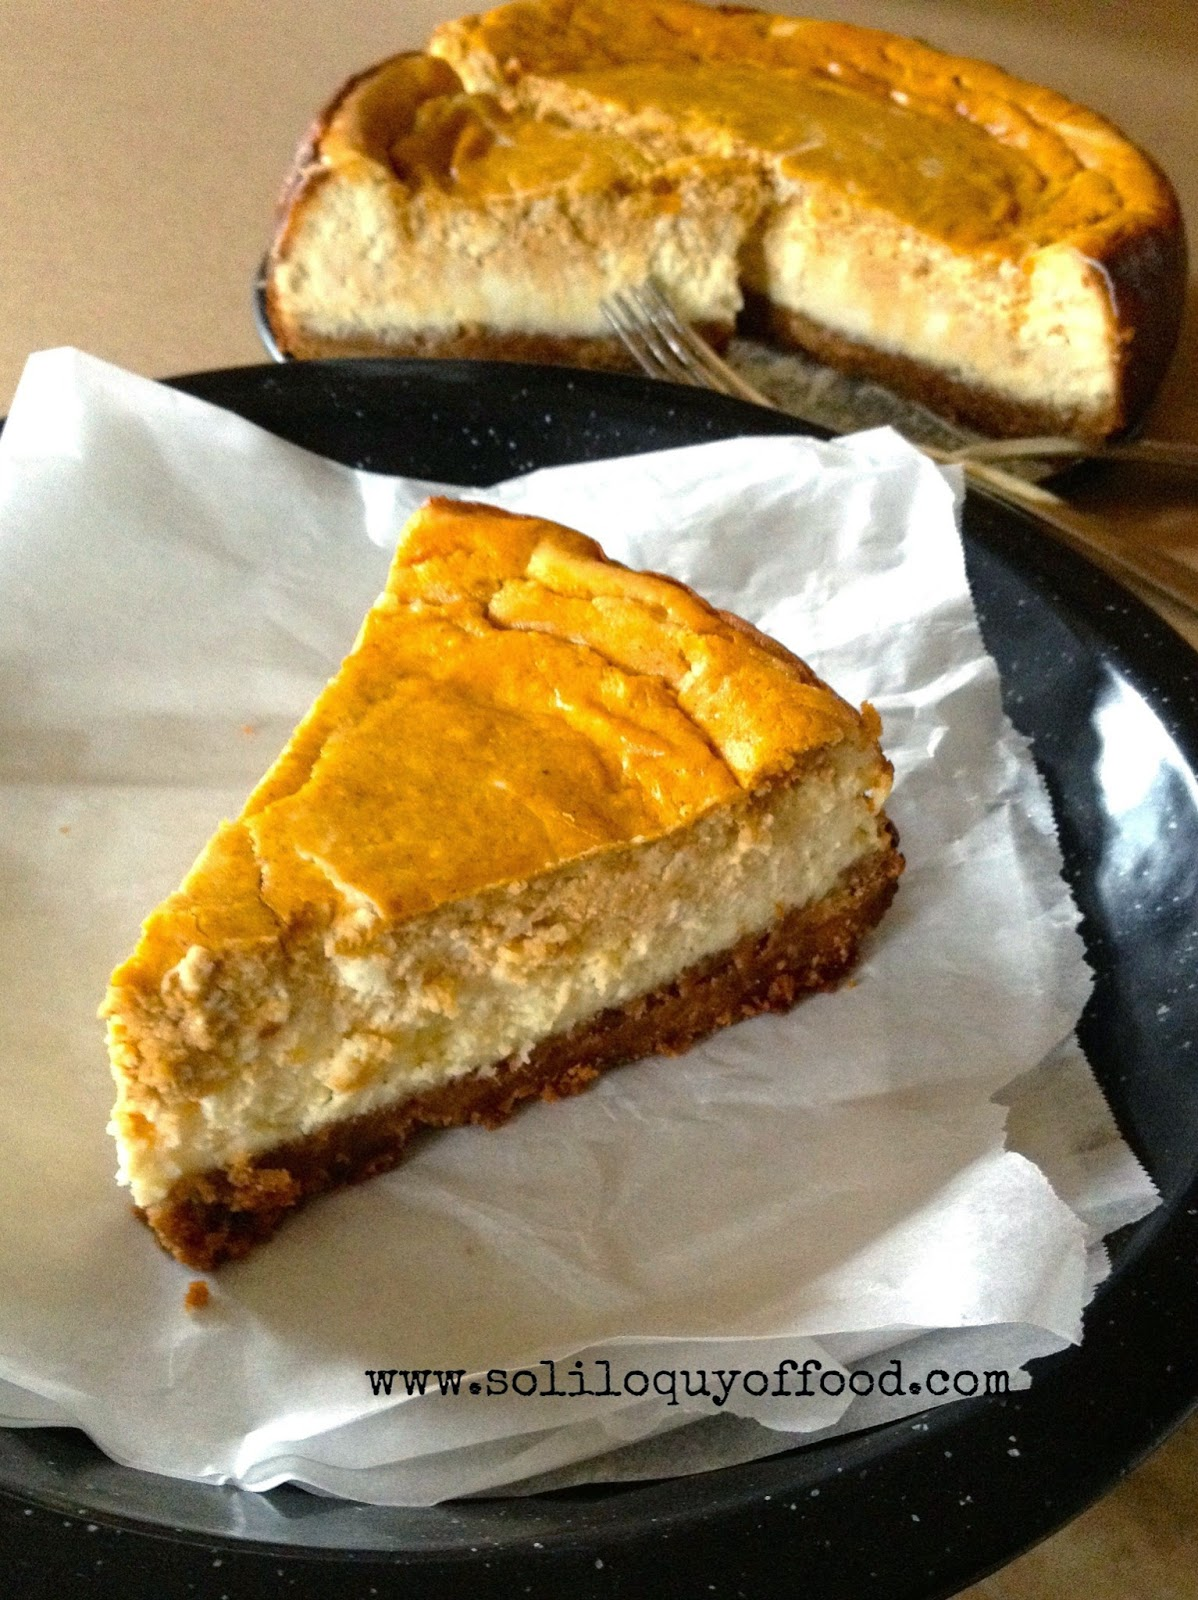 Pumpkin Layer Cheesecake - Contributor post from Kim at www.soliloquyoffood.com